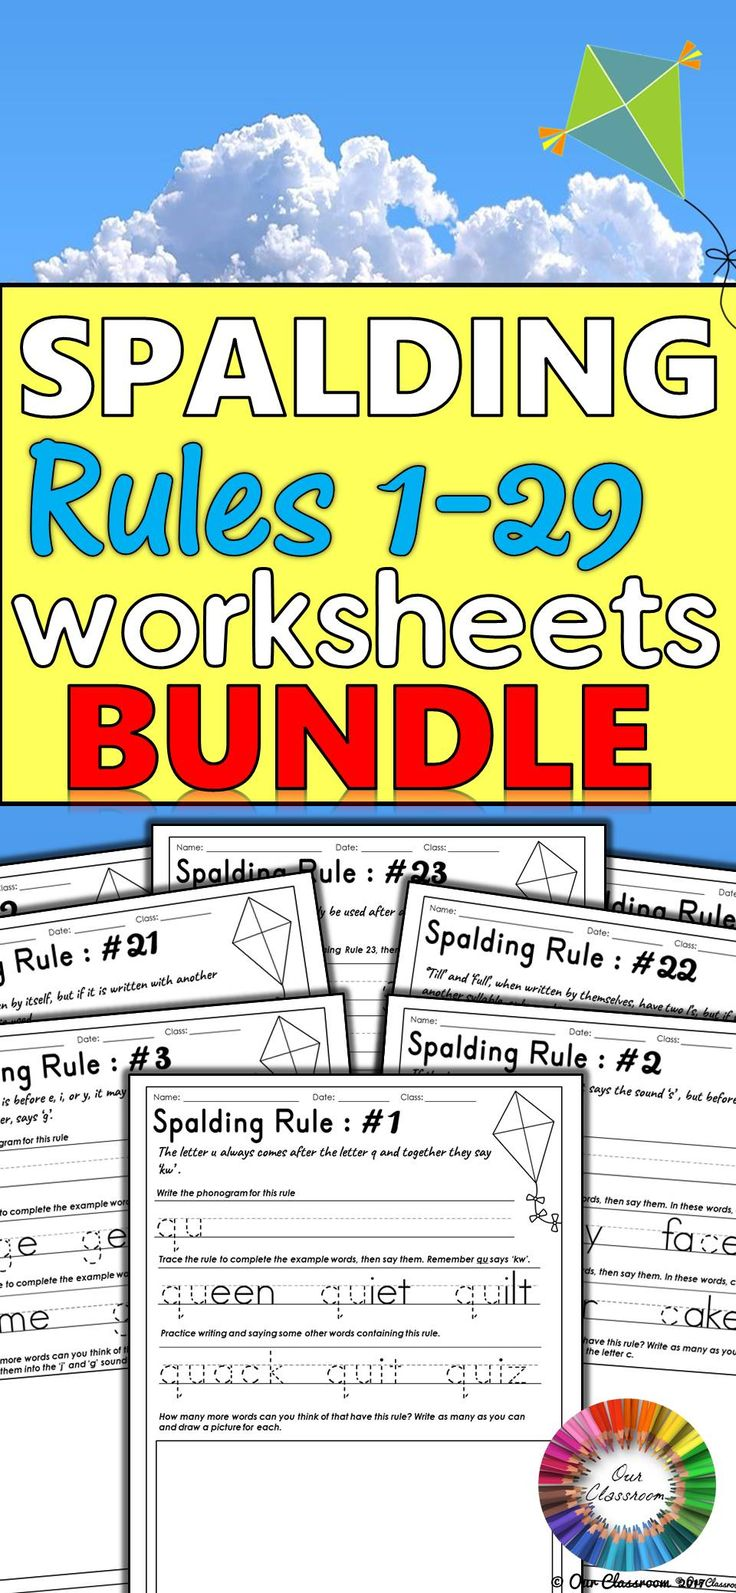 Learning the Spalding Rules? This bundle contains an individual worksheet for each of the Spalding Rules 1-29 at a discounted price. It includes phonogram pronunciation, spelling and language rules. These worksheets include tasks to help students understand the different rules and what they do. Students apply all these rules when spelling, reading words and writing sentences. They should be doing daily practice of these rules and these worksheets make that easy!